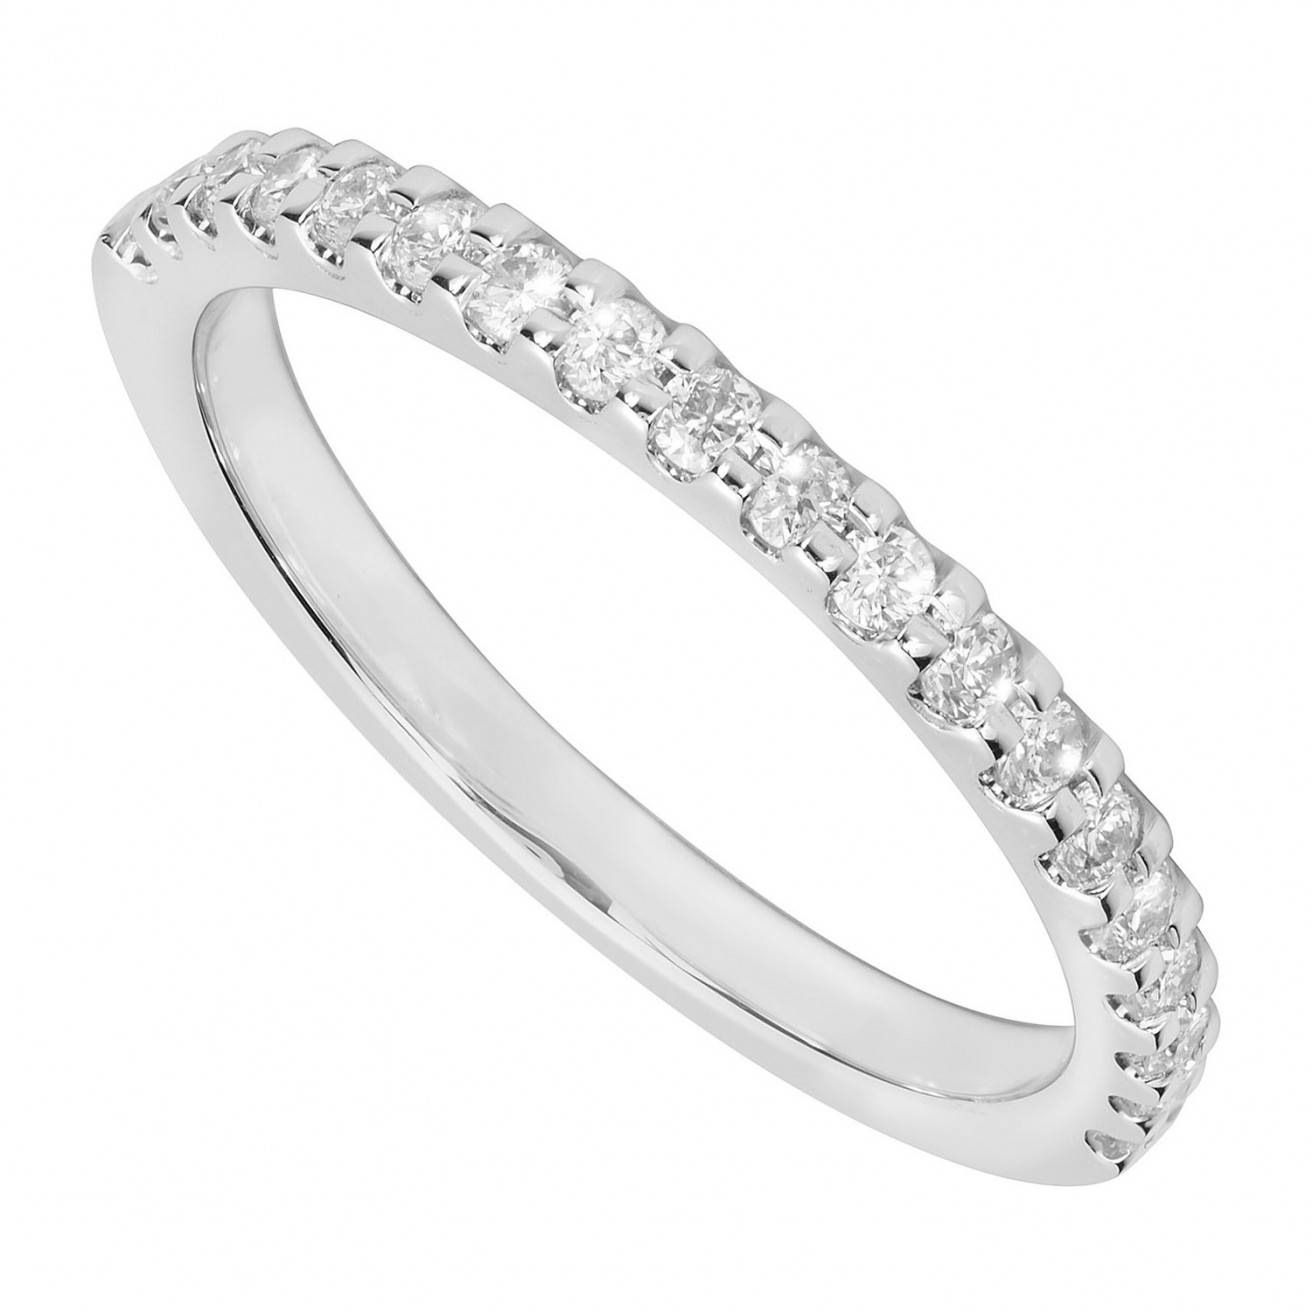 Diamond Wedding Bands Blue Nile Diamond Wedding Rings In Good Throughout Wedding Rings With Diamond Band (View 7 of 15)